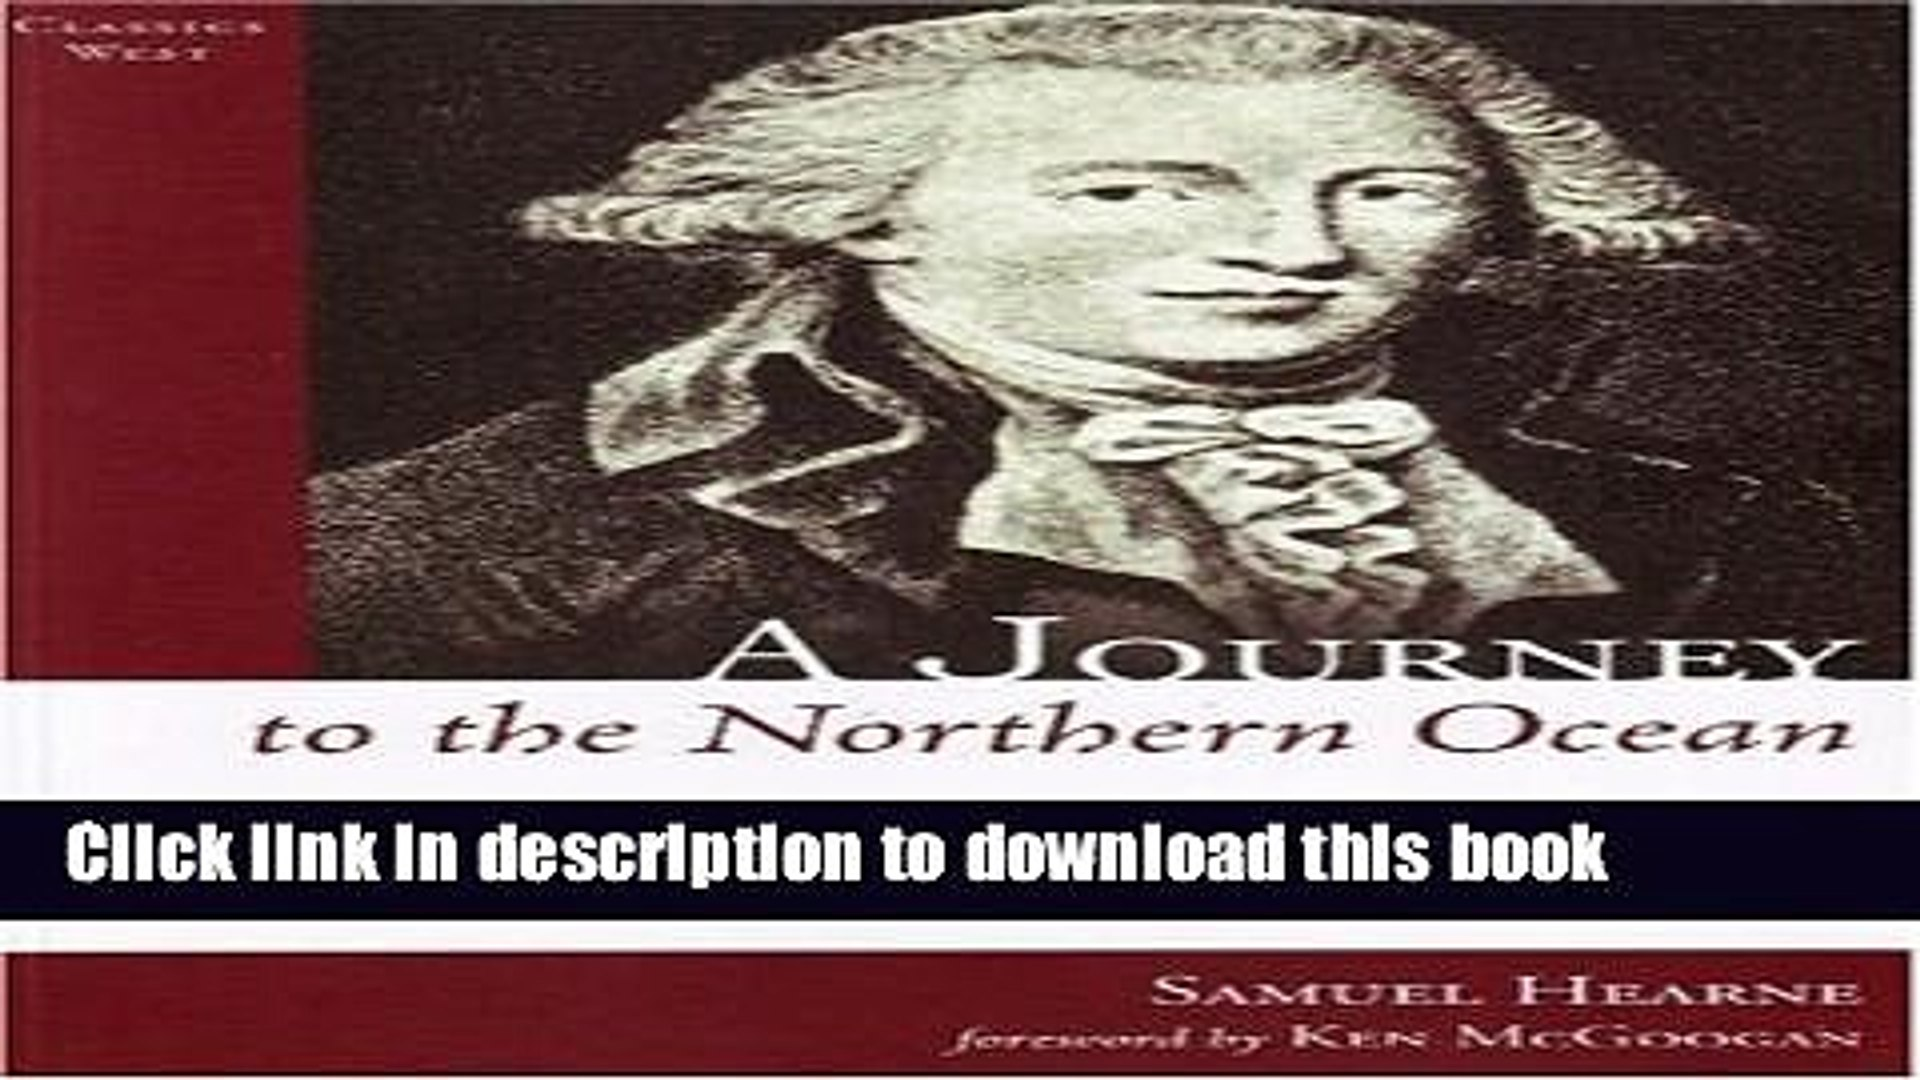 A Journey to the Northern Ocean The Adventures of Samuel Hearne